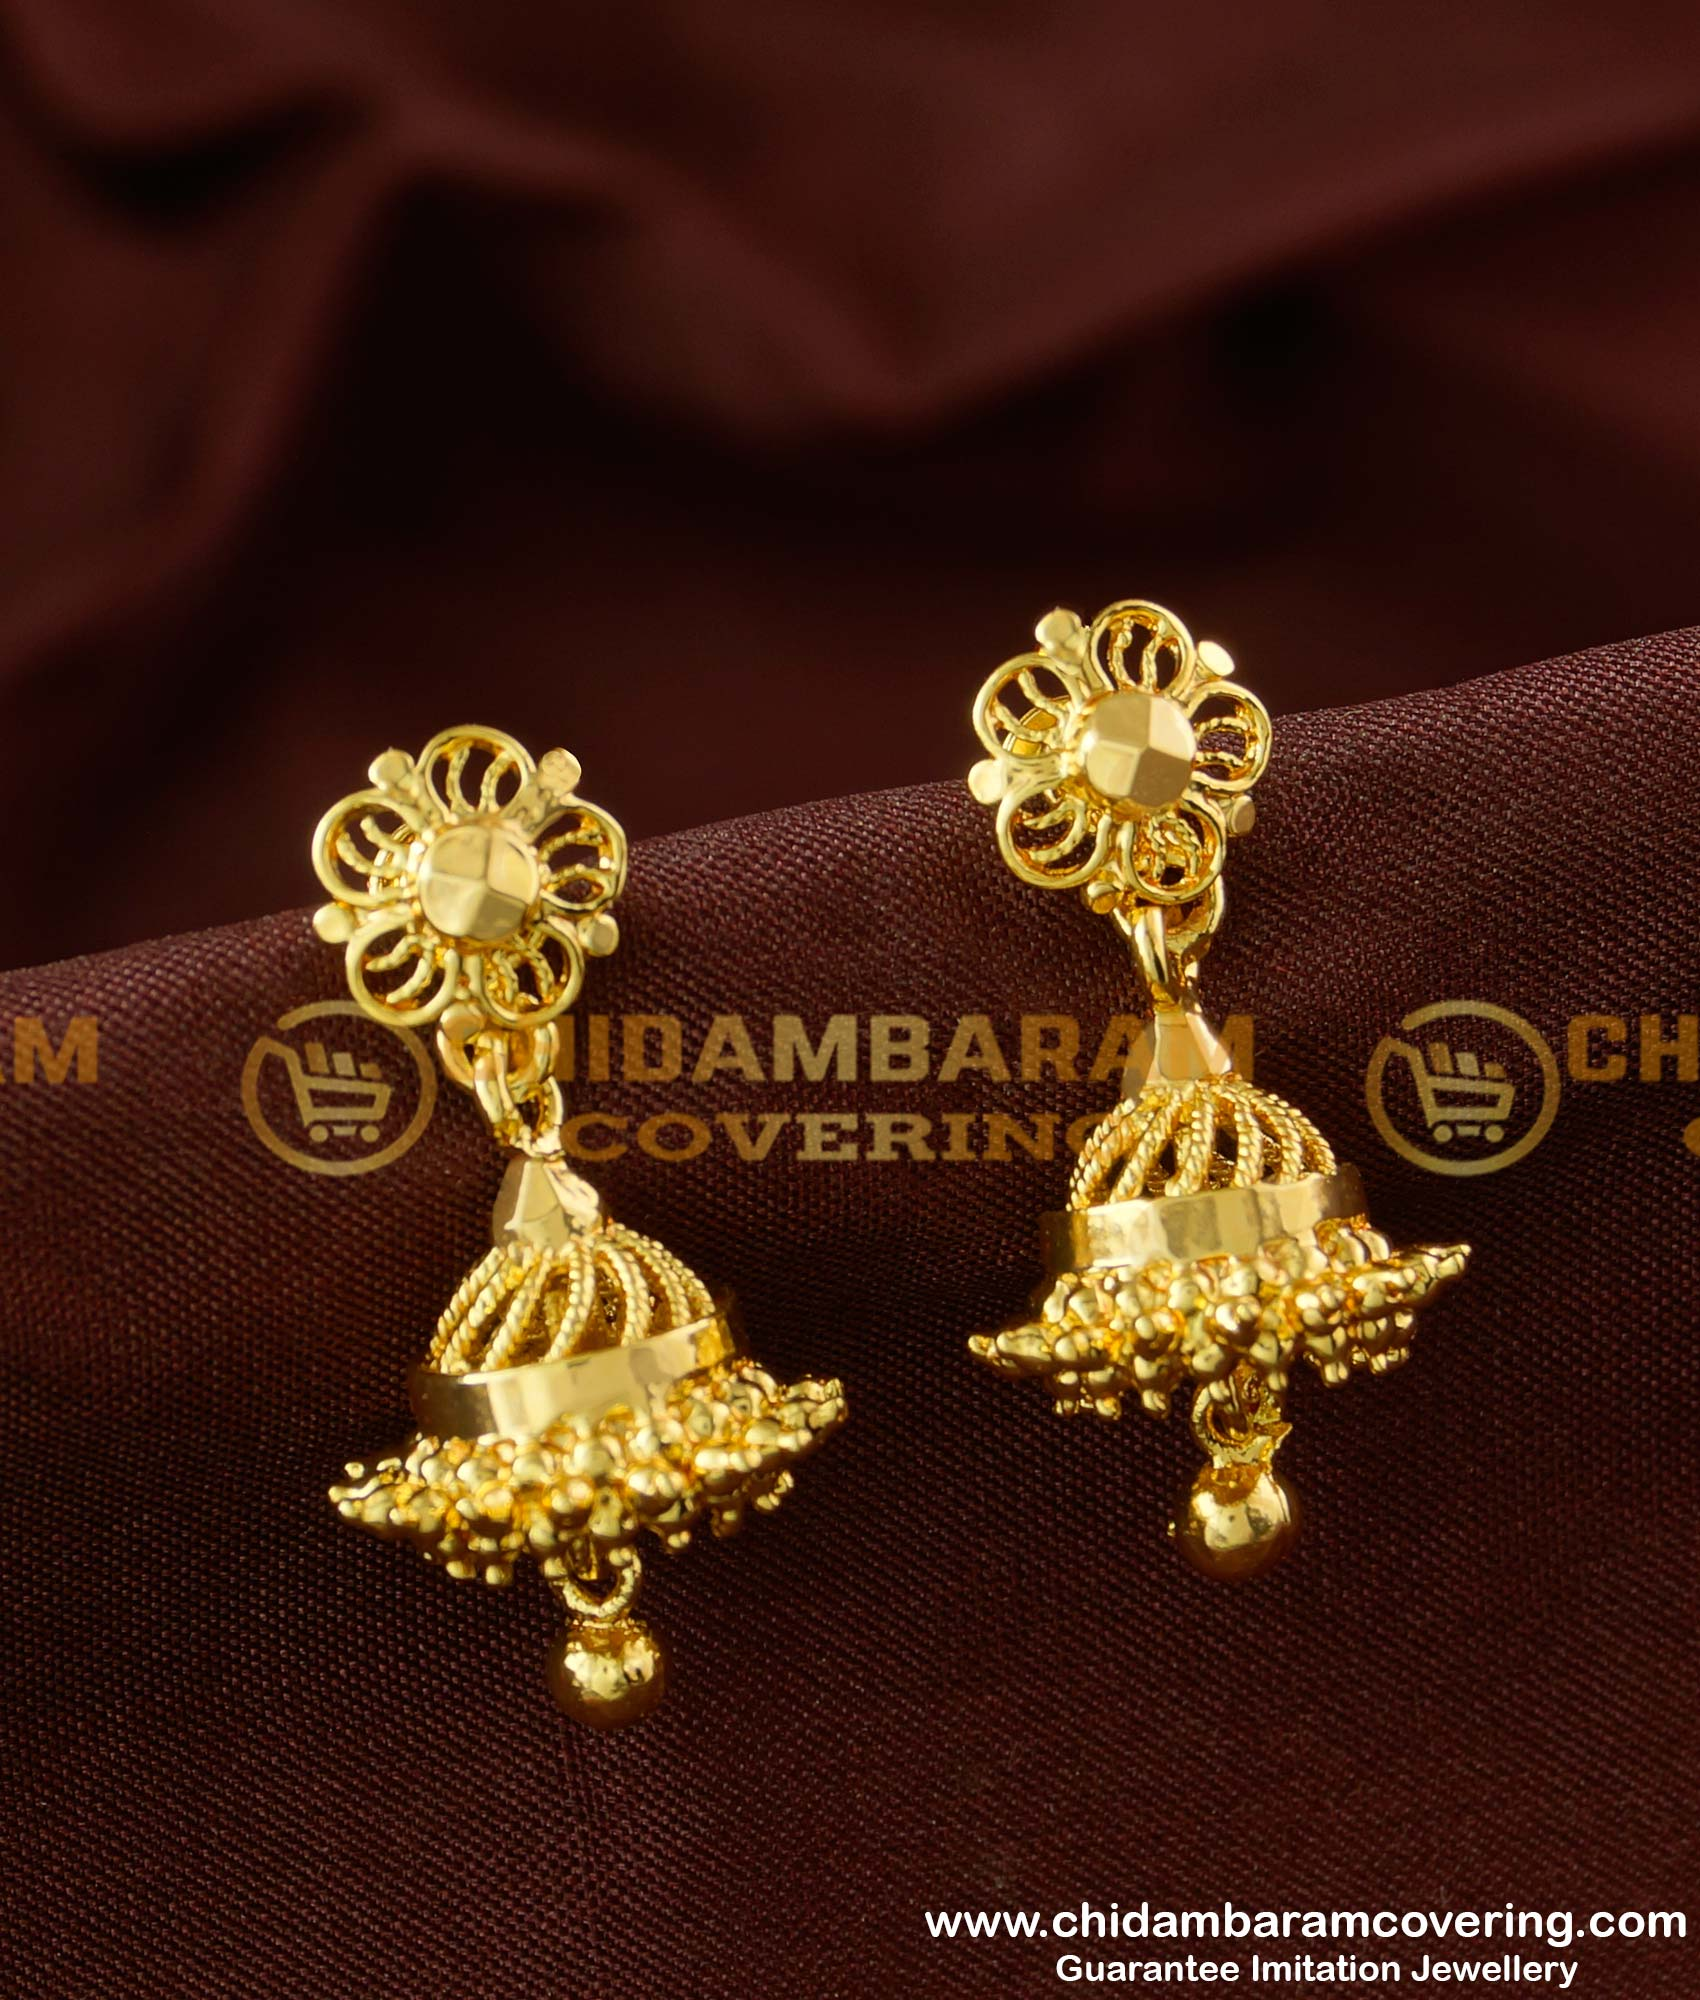 Erg163 Daily Wear One Gram Gold Jhumki Designs For Girls Buy Original Chidambaram Covering Product At Wholesale Price Online Shopping For Guarantee South Indian Gold Plated Jewellery,Gold Chain Designs For Womens With Price